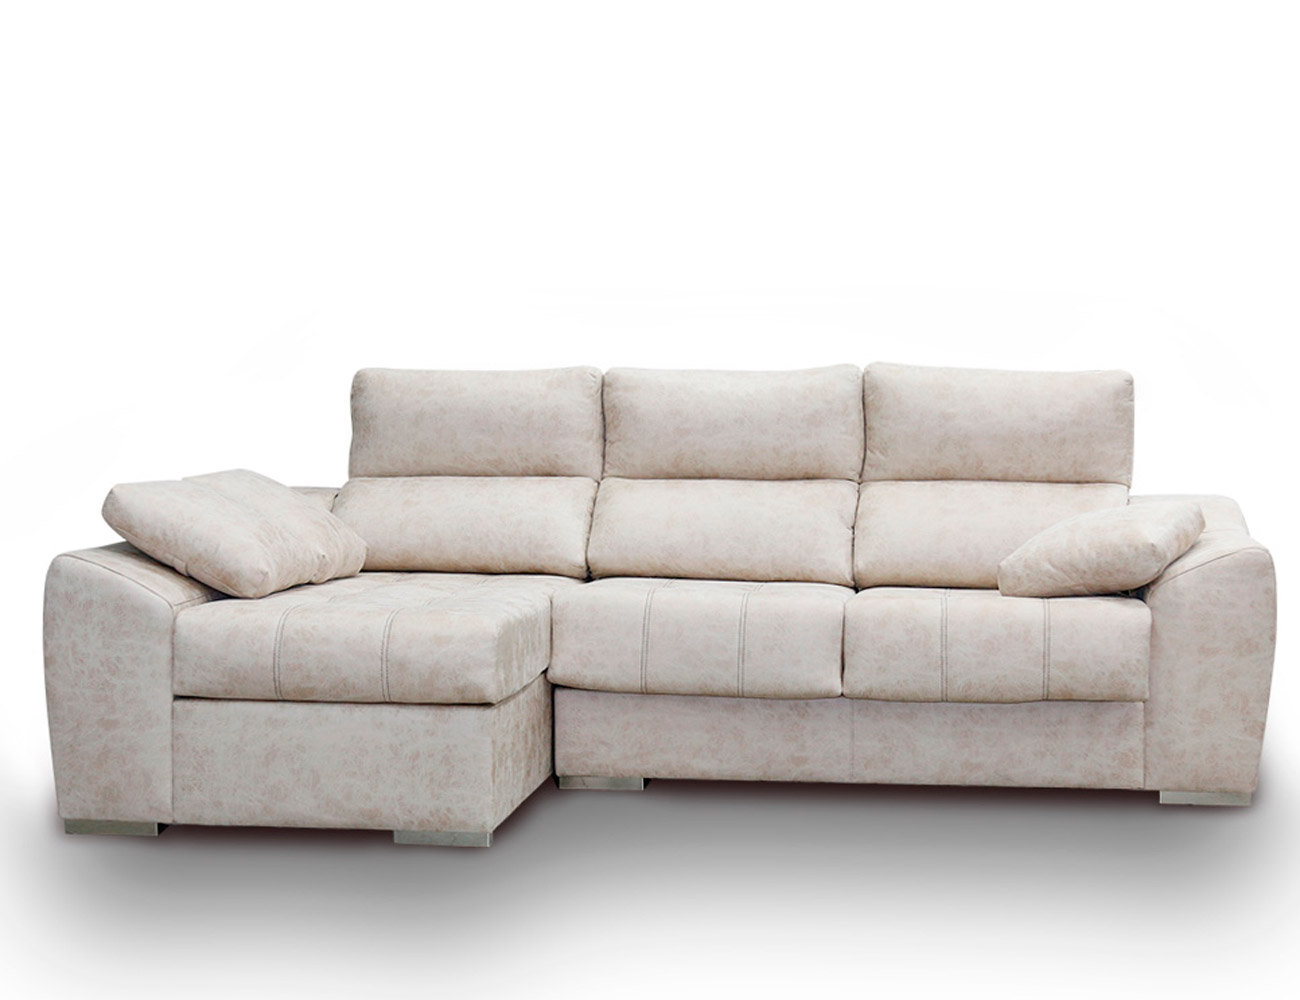 Sofa chaiselongue anti manchas beig blanco16